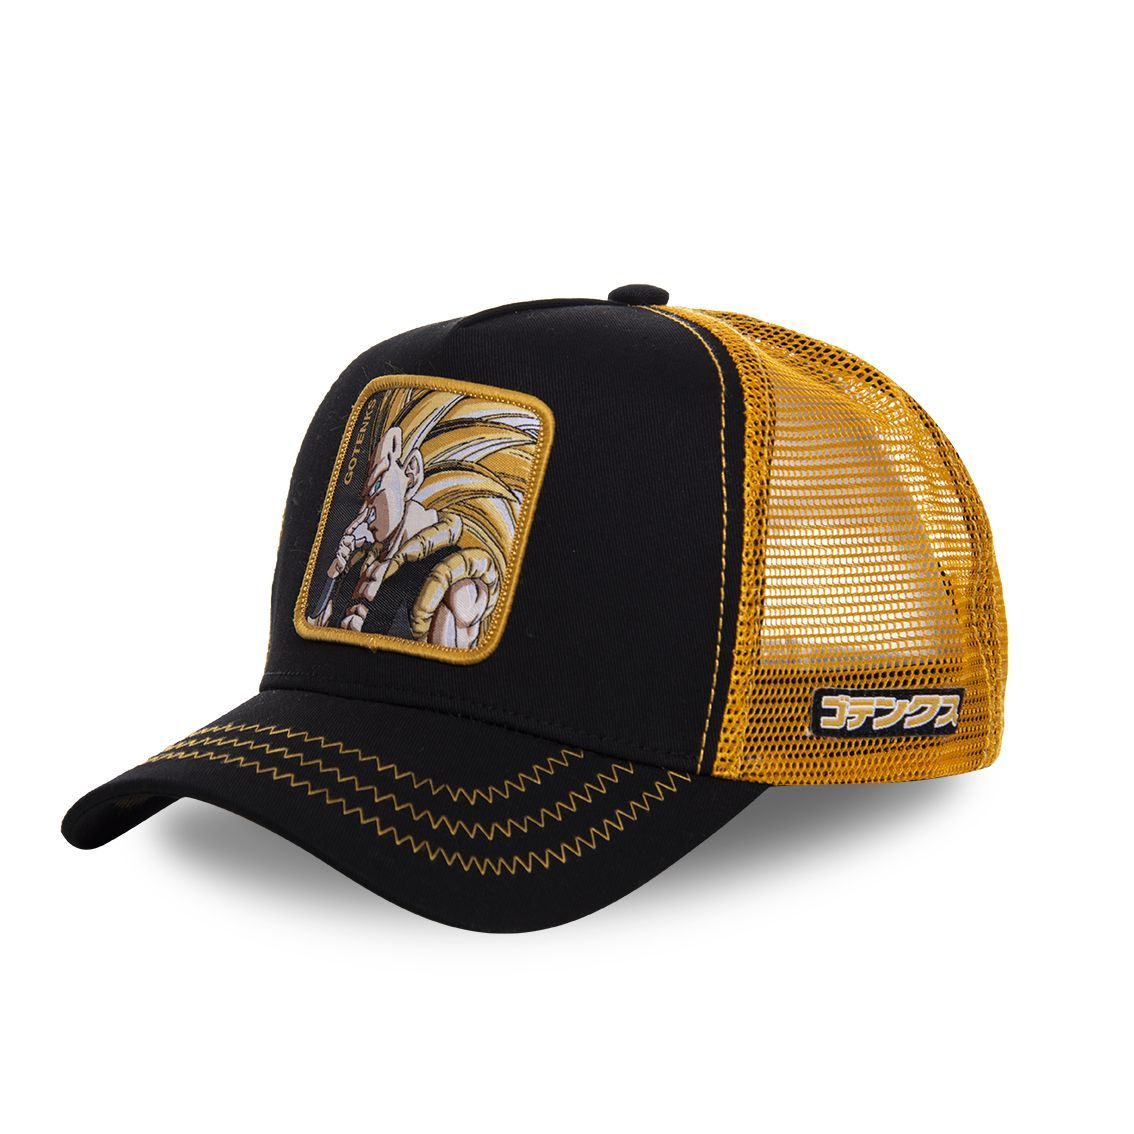 Casquette capslab dragon ball z goku super saiyen noir et orange (photo)